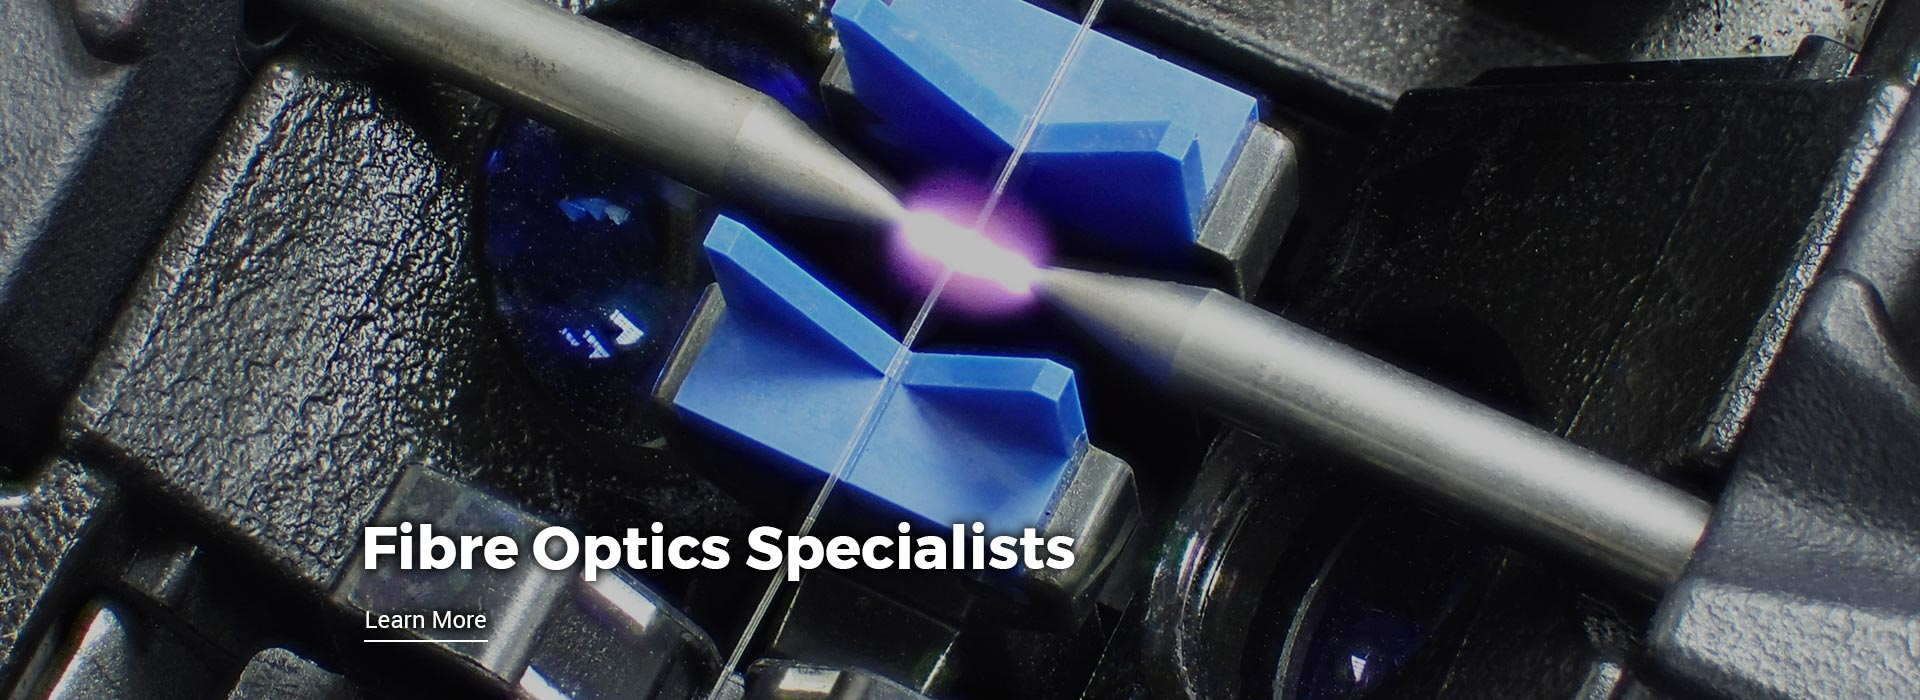 Walltech are Fibre Optics Specialists. Learn more about our service